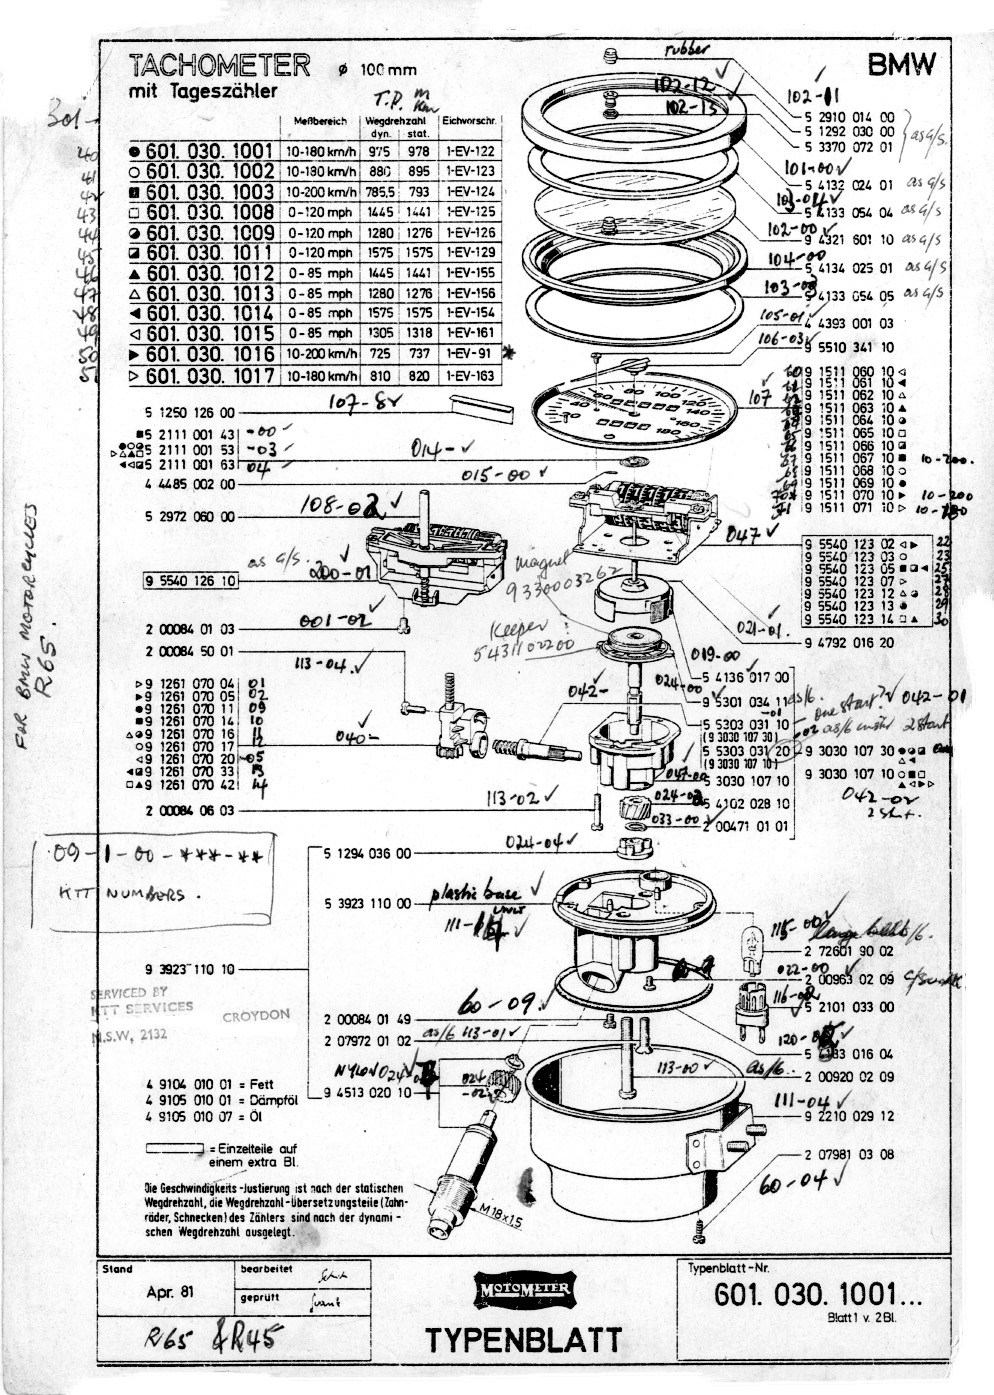 smiths electronic speedometer wiring diagram comfortable vdo speedometer wiring diagram photos electrical rh  [ 994 x 1395 Pixel ]